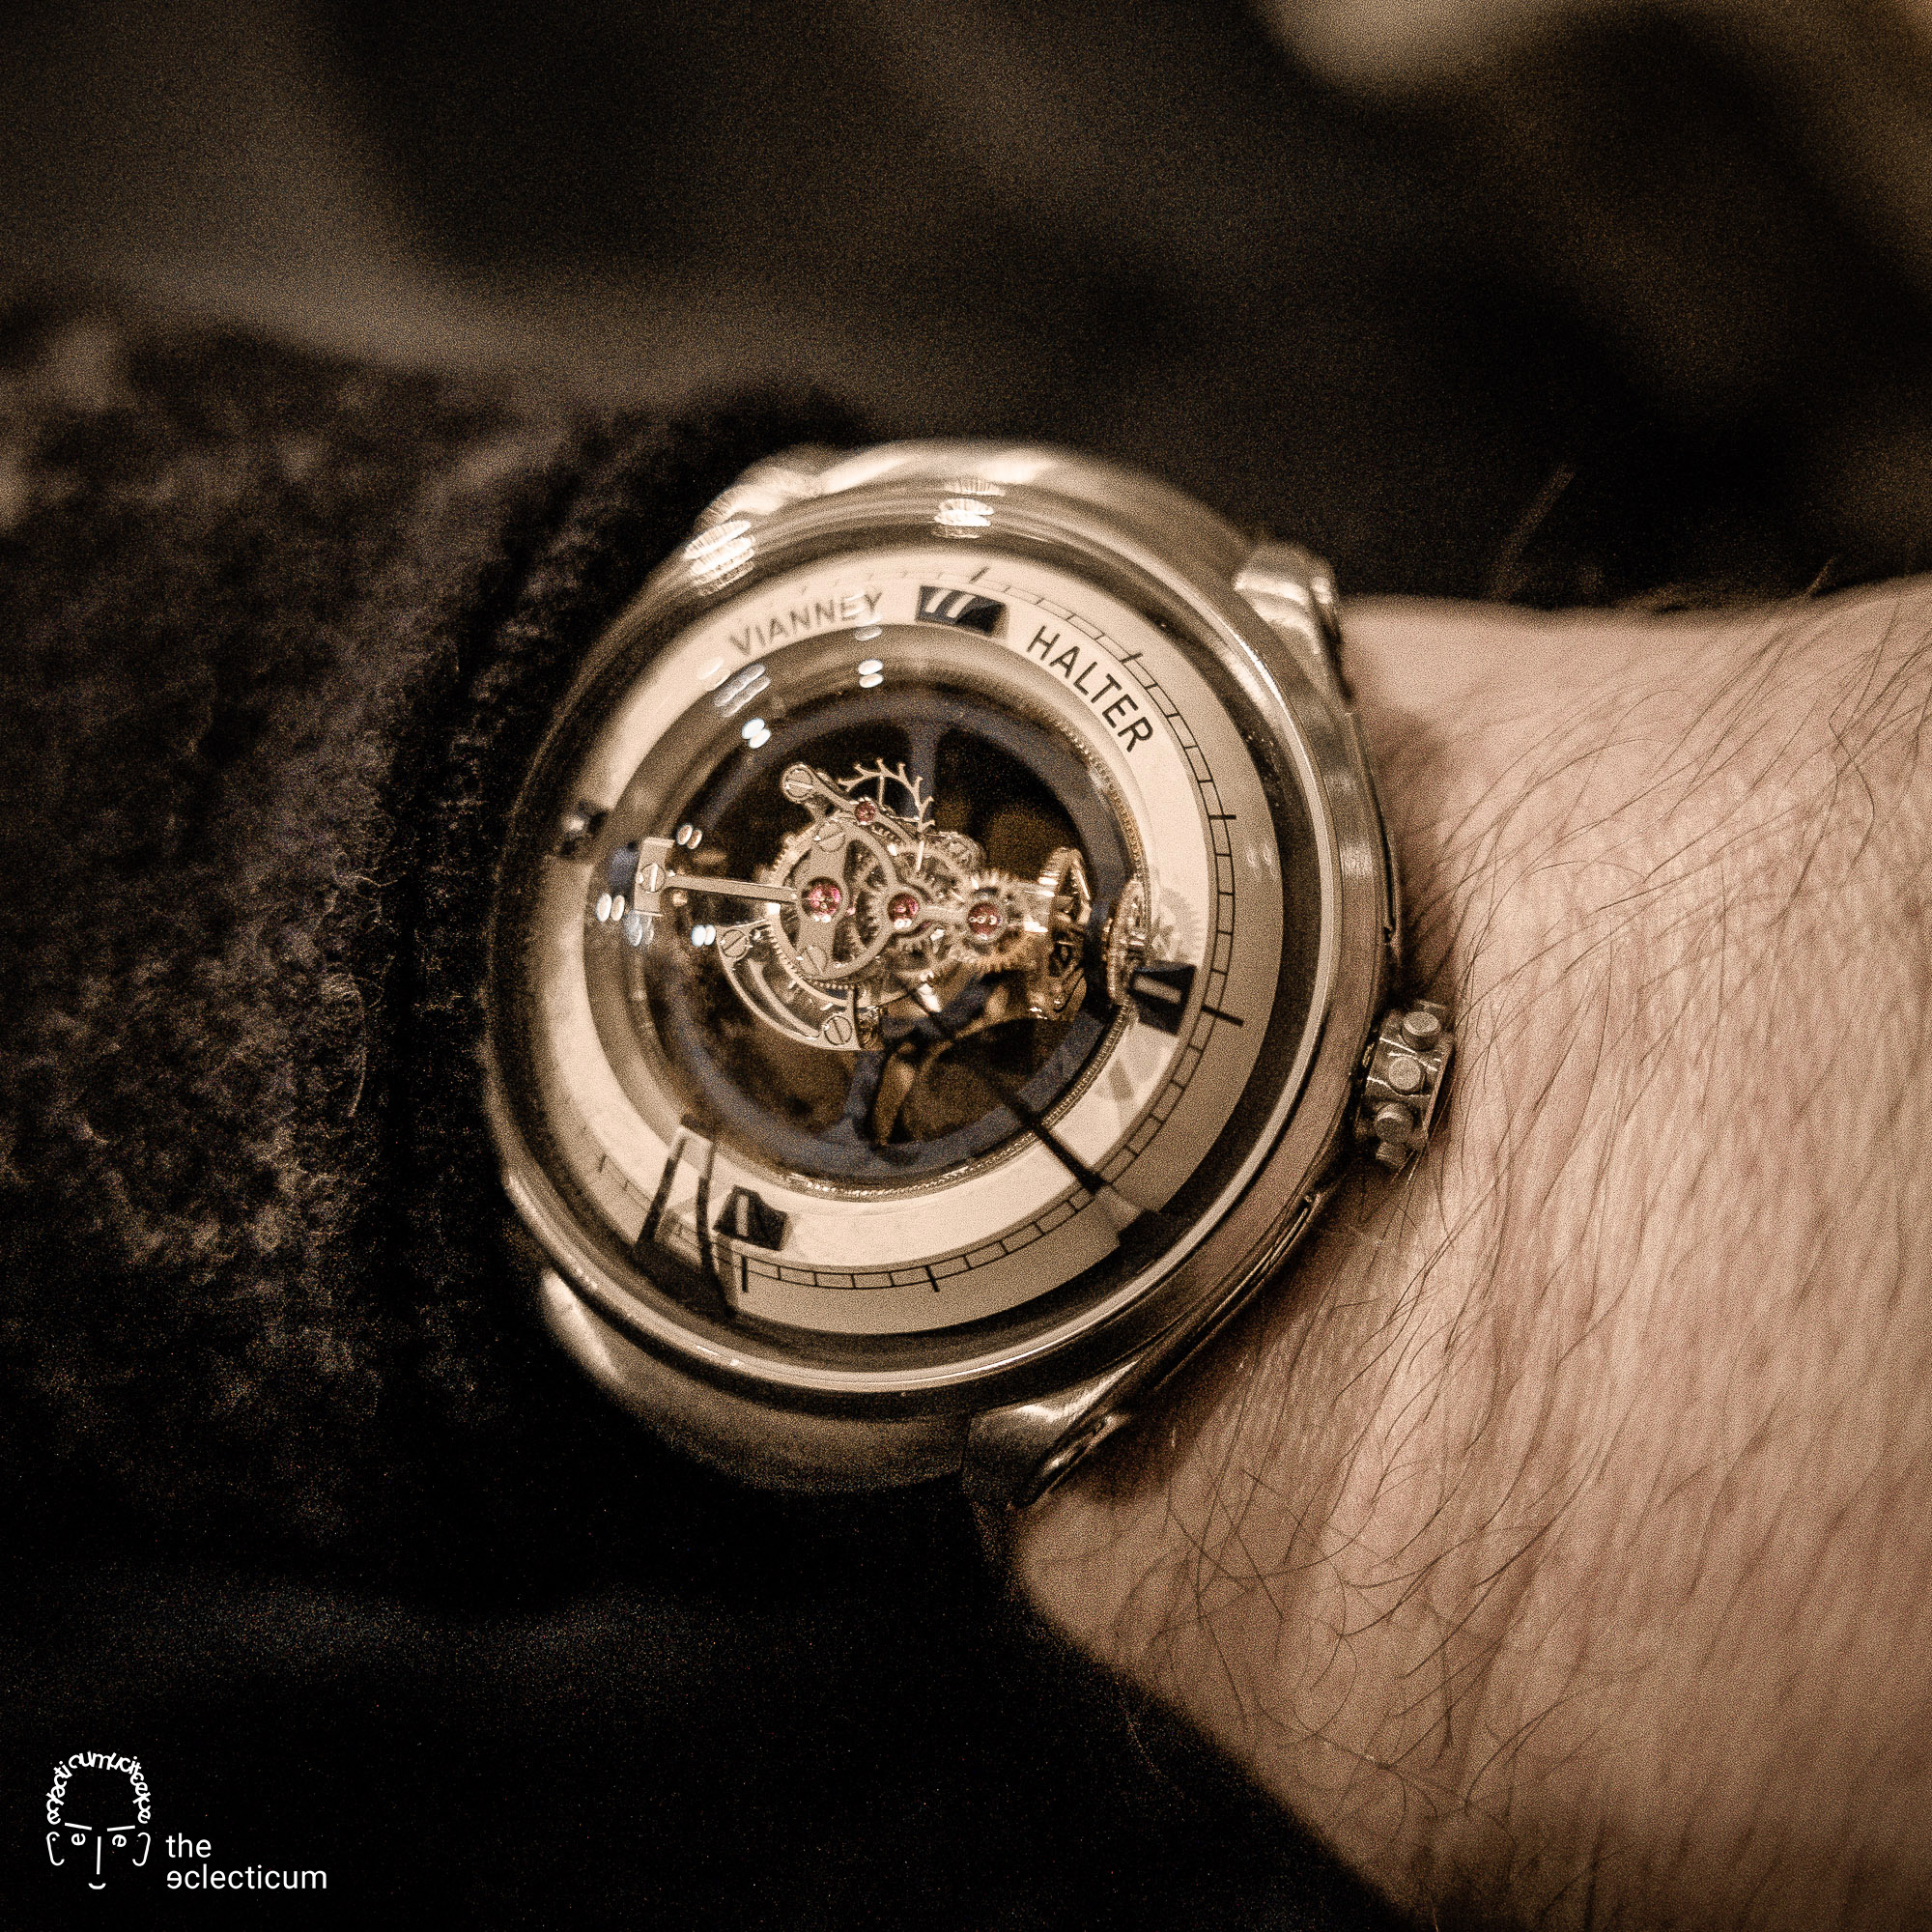 Vianney Halter Deep Space Tourbillon wristshot